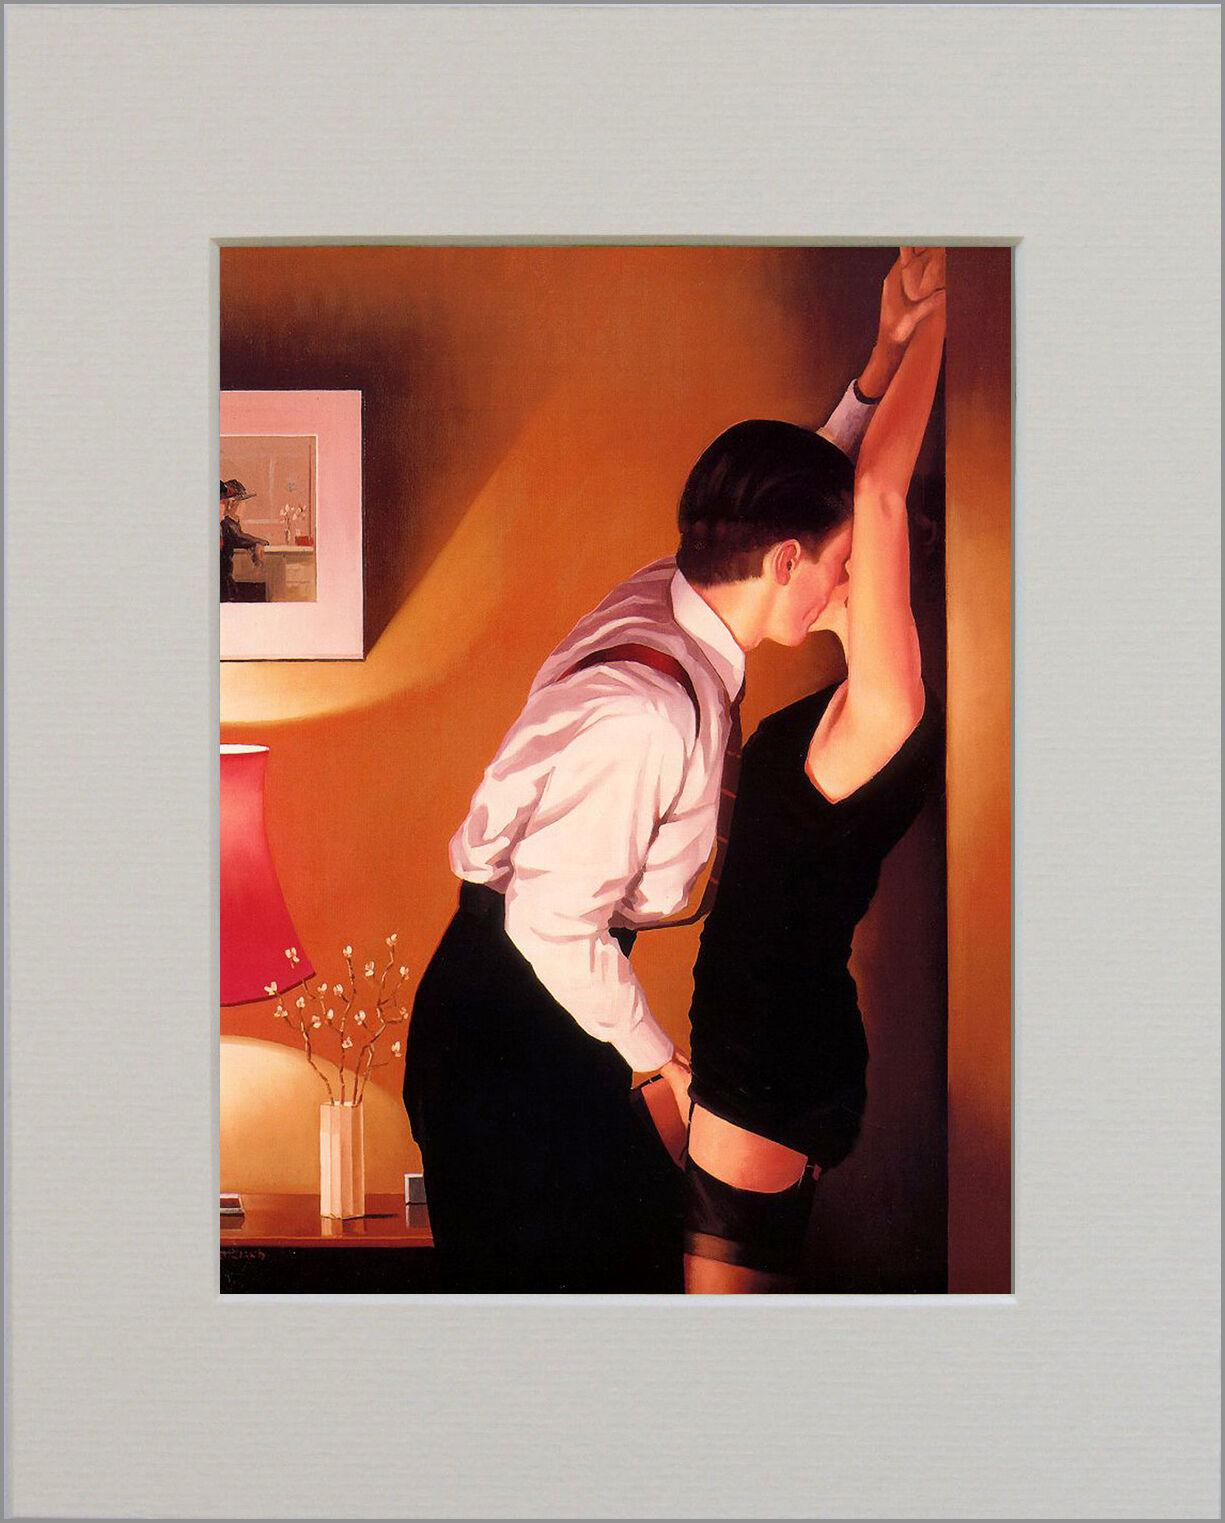 The Erotic Coleção Pictures 10 * 8 polegadas Framed Jack Vettriano Home Decor HD Imprimir pintura a óleo sobre tela Wall Art Canvas Pictures 191216